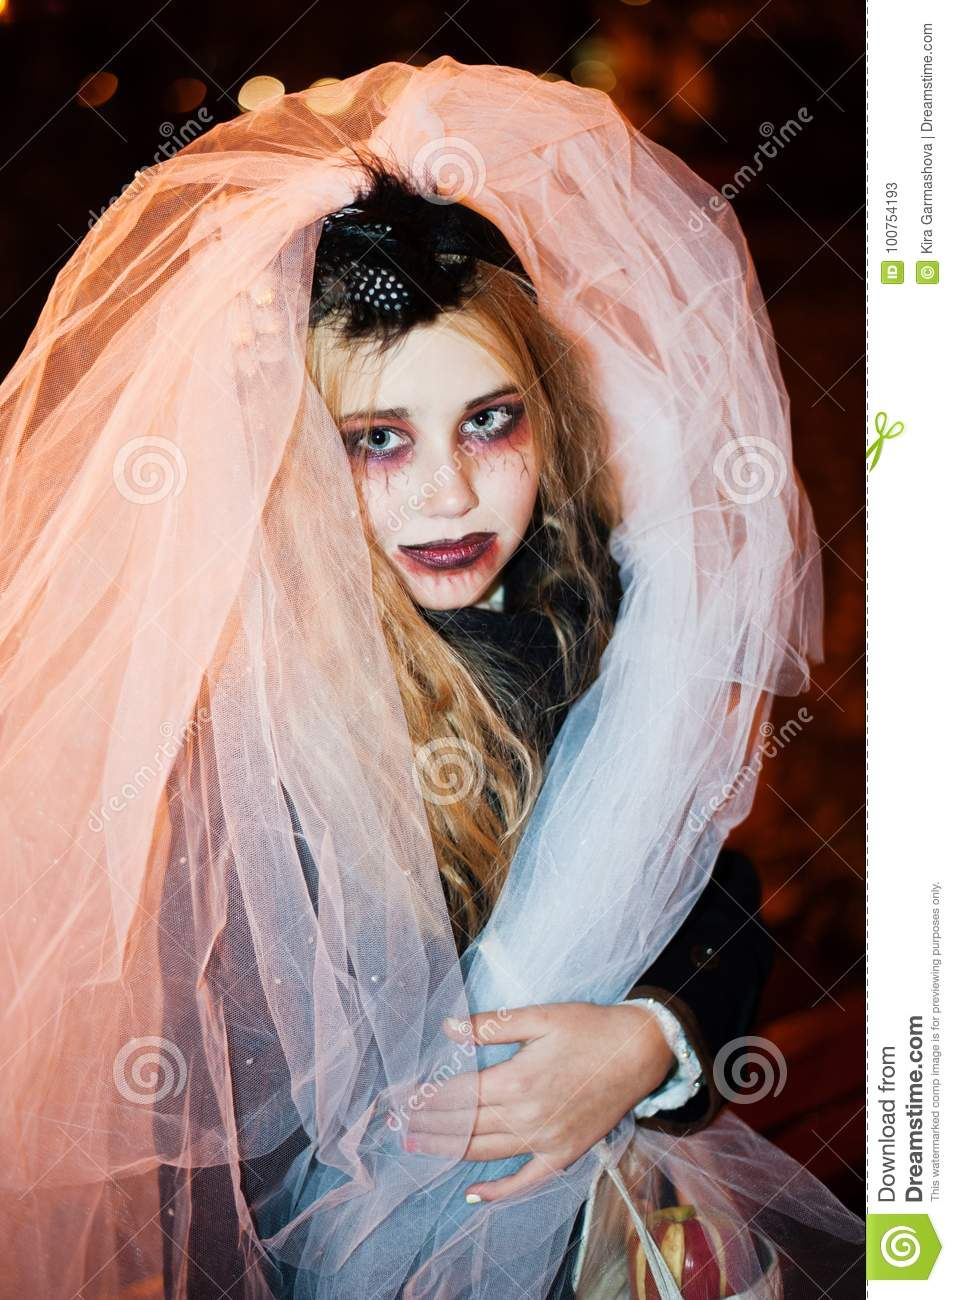 girl teenager in the image of a dead bride zombie on halloween